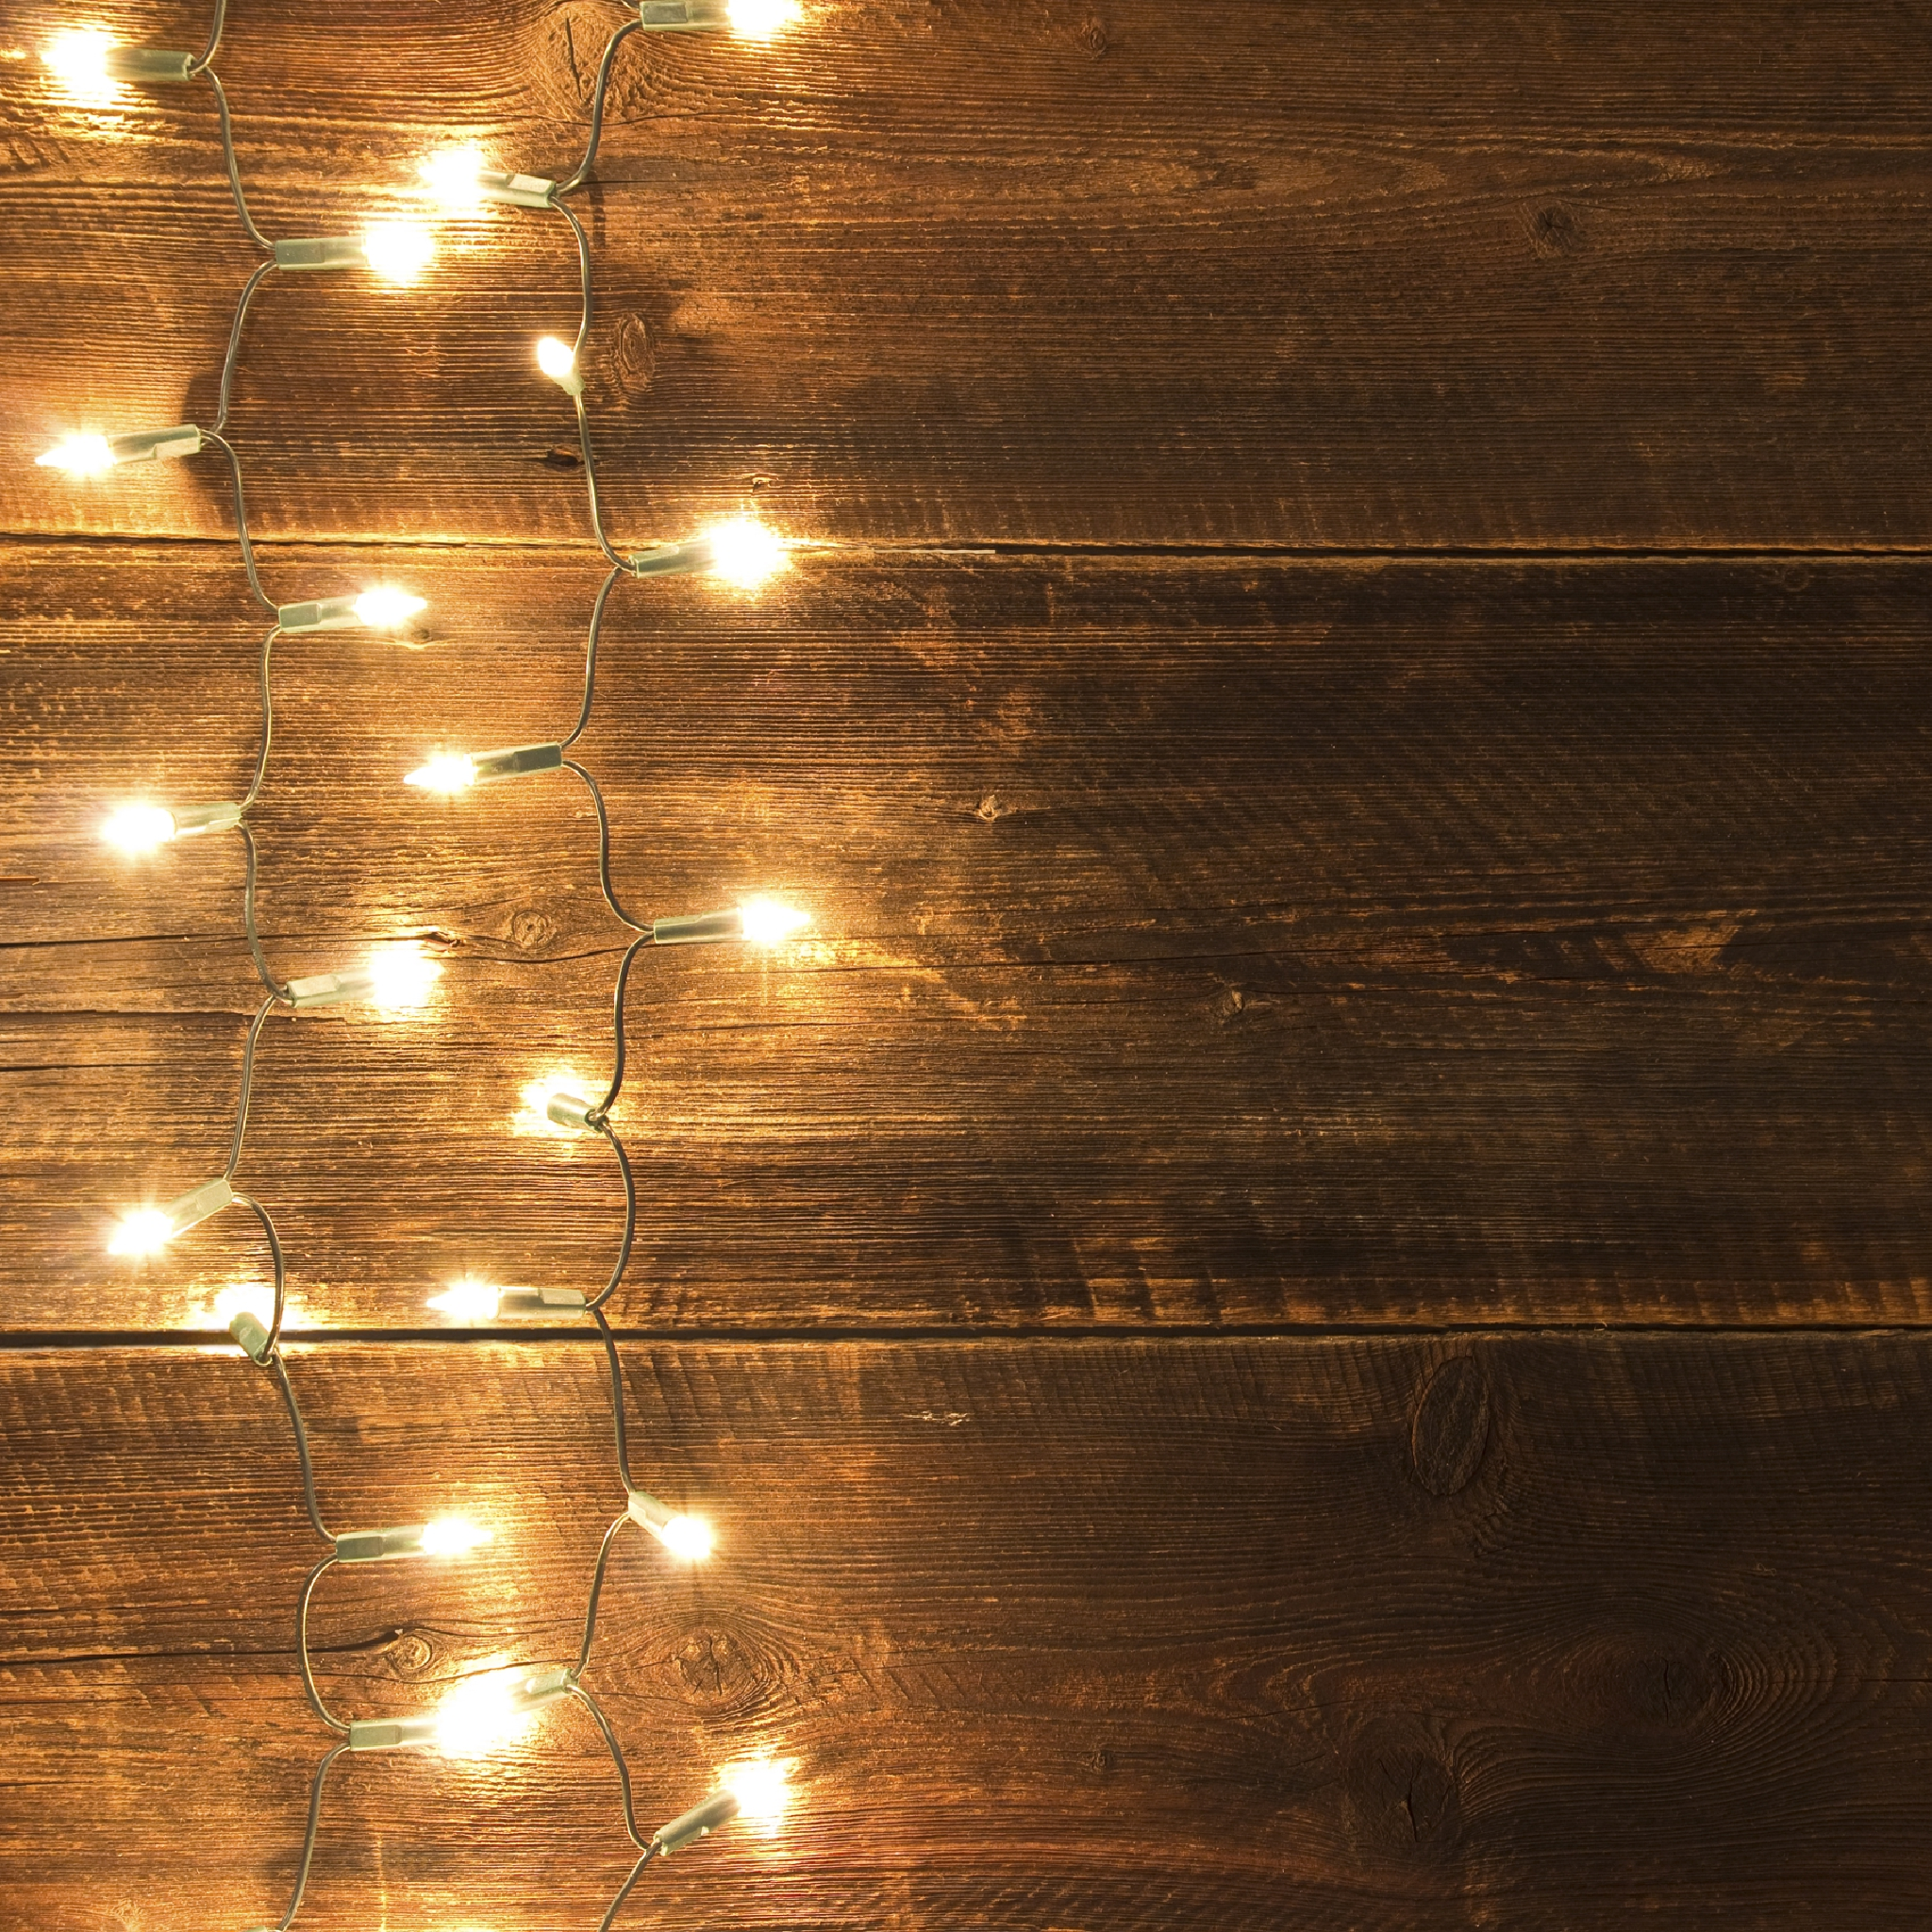 Lights On Wooden Wall Tap to see more creative light in